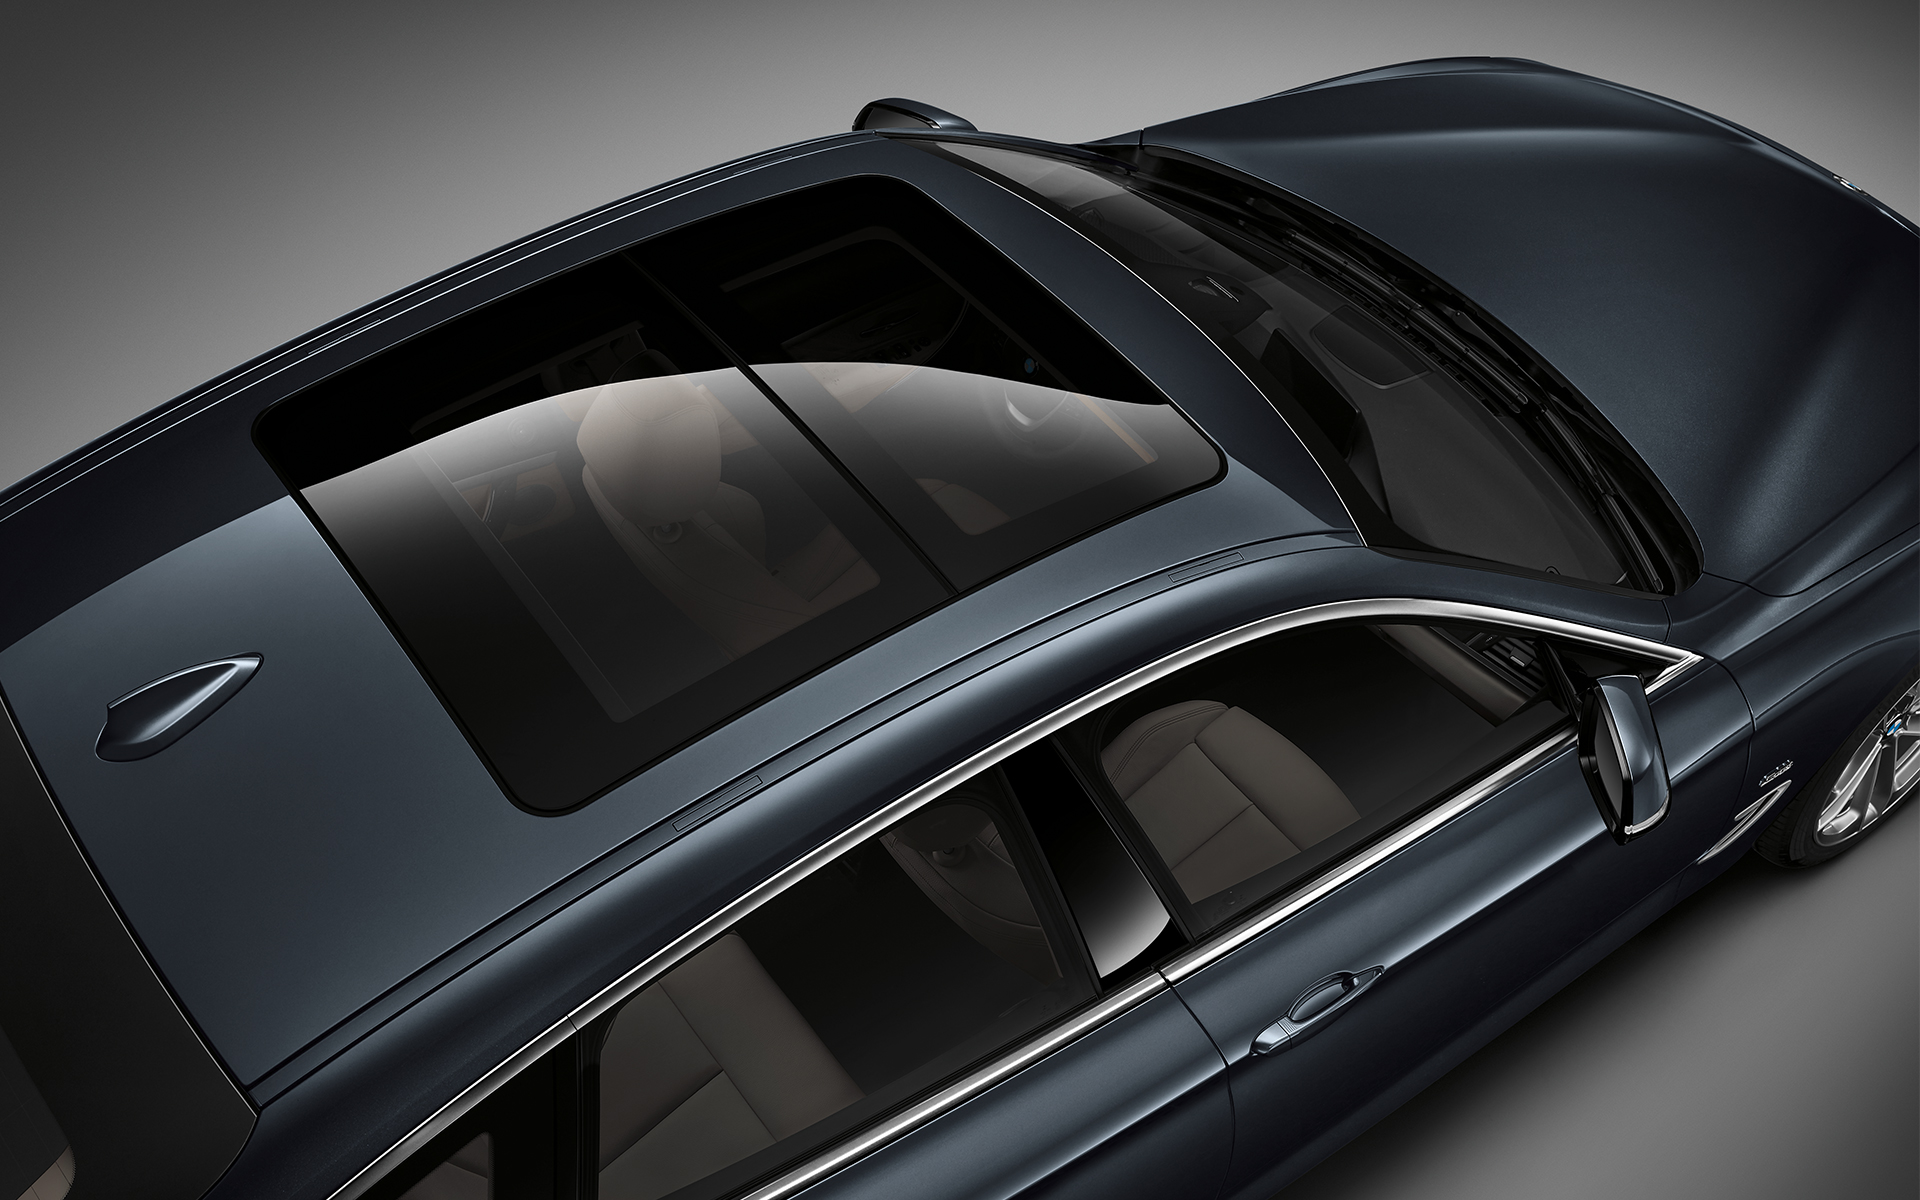 BMW 3 Series Gran Turismo: top view of elegant carbon roof.